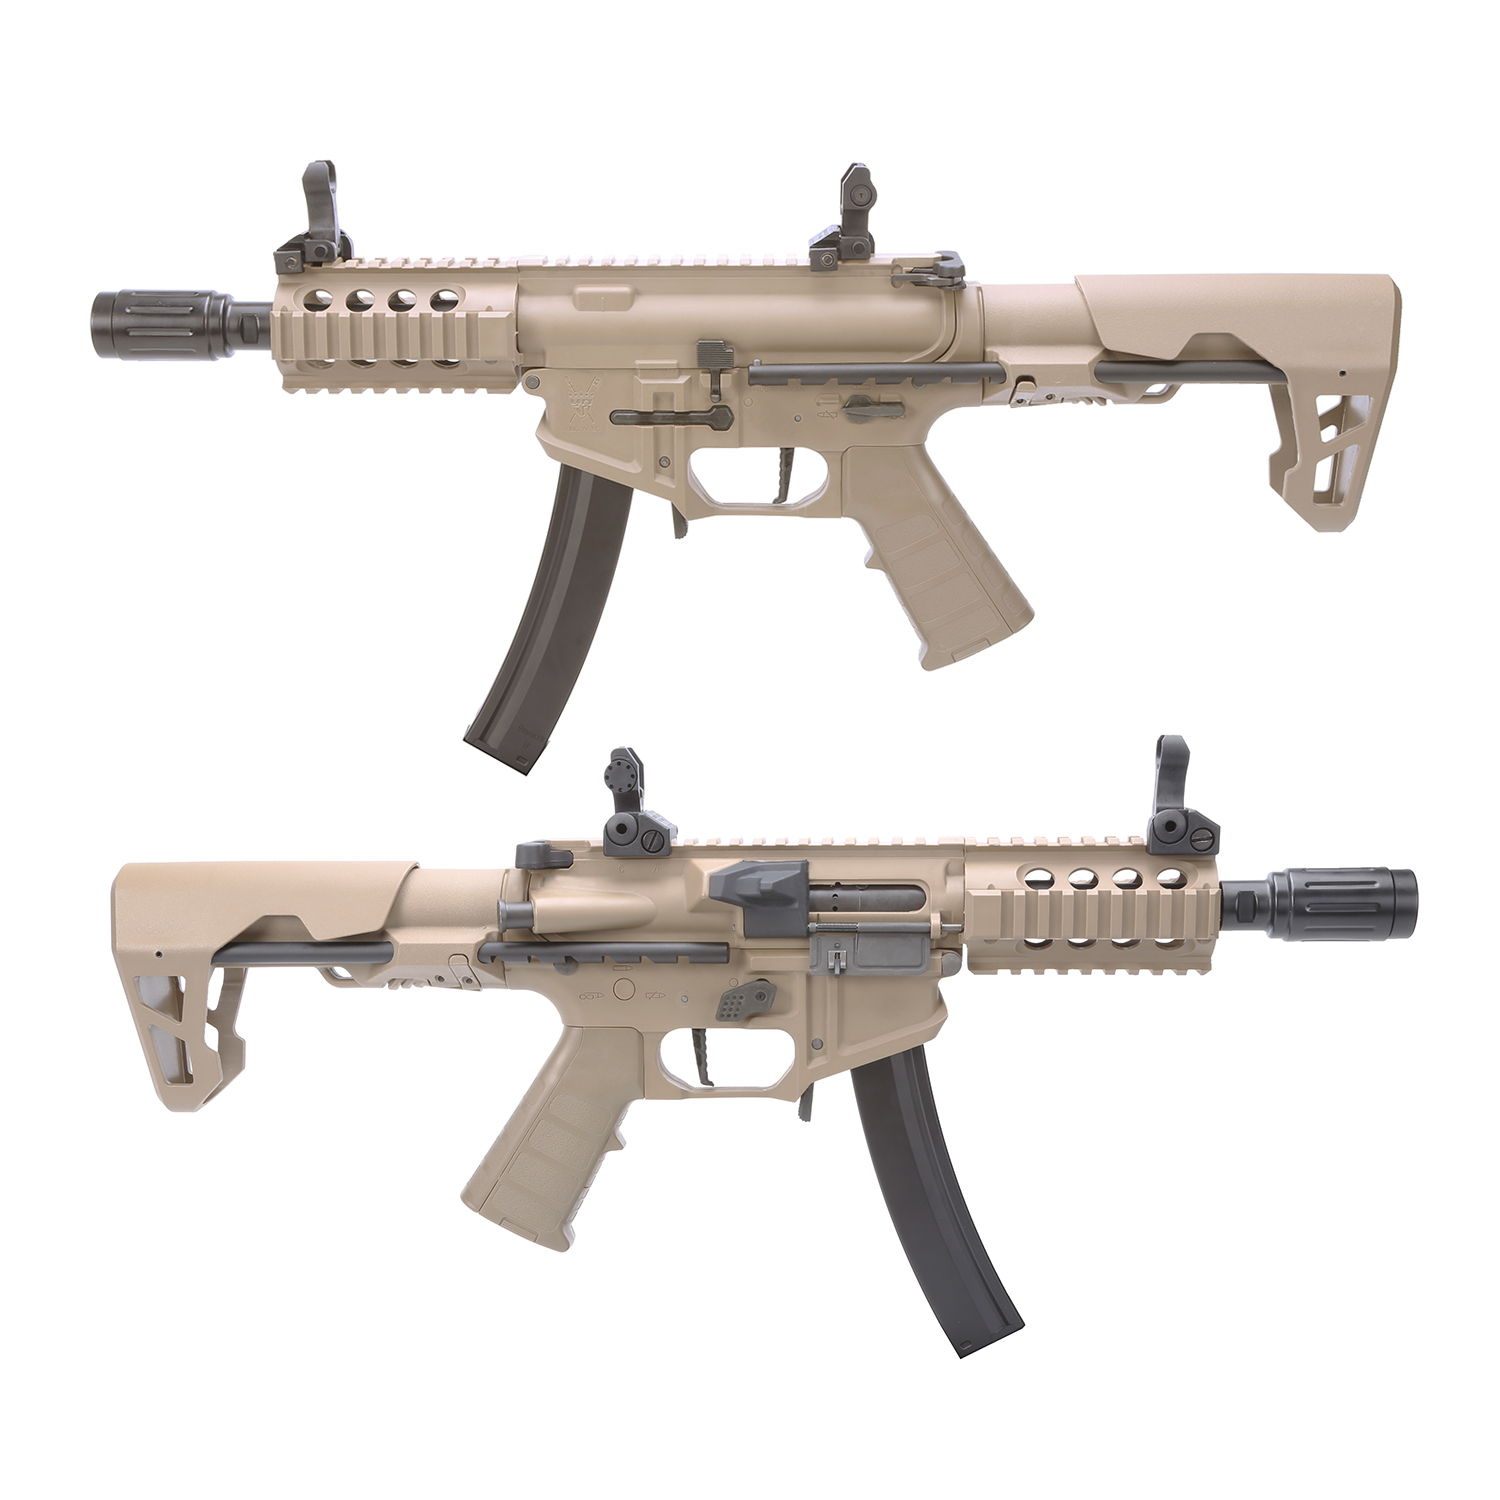 King Arms PDW 9mm SBR Shorty AEG w/ Mosfet - DE (Polymer)